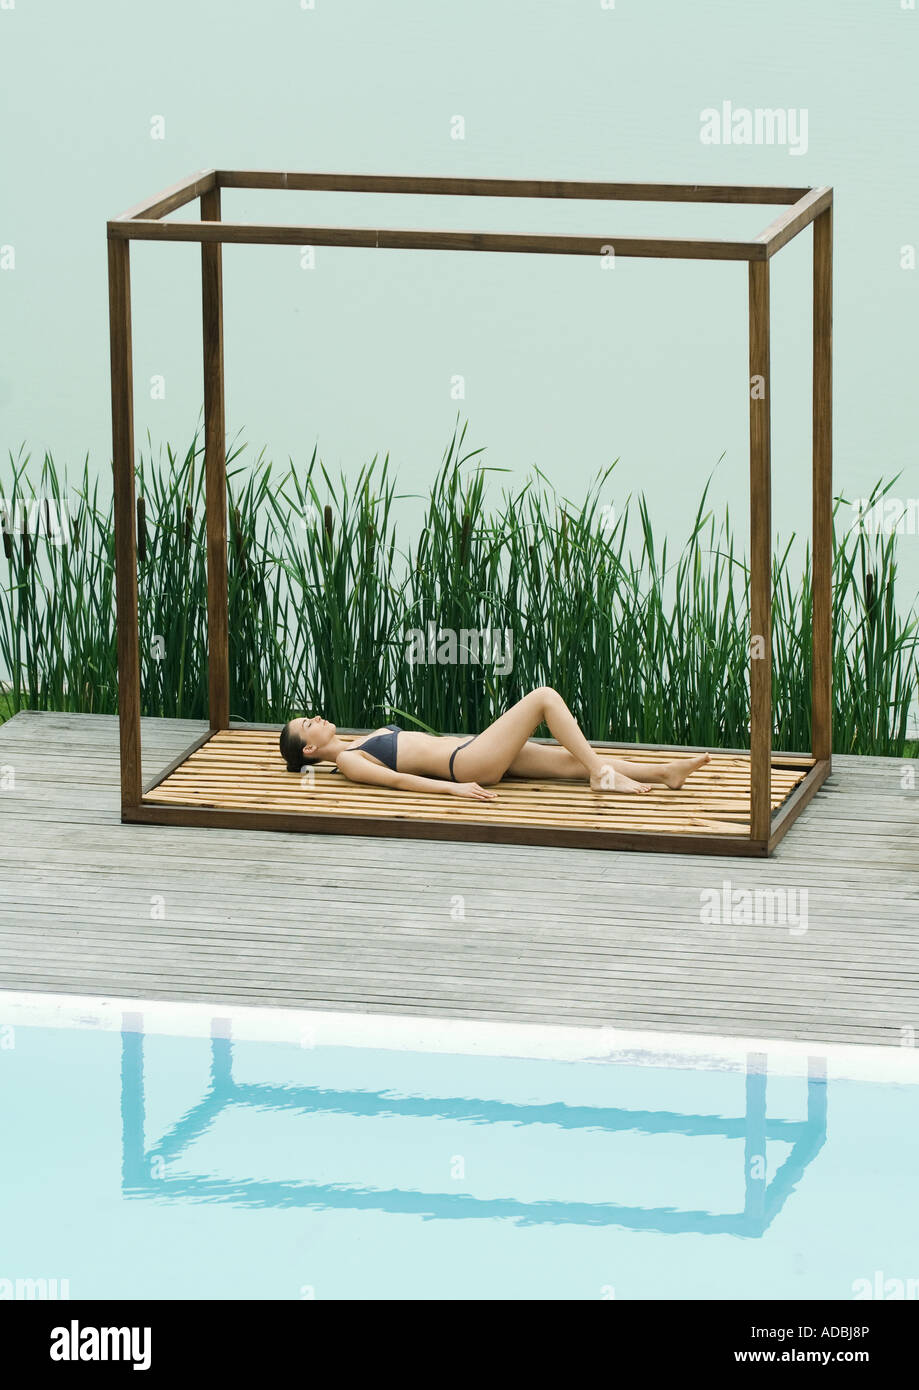 Woman wearing bikini, lying on back in square structure between lake and pool - Stock Image